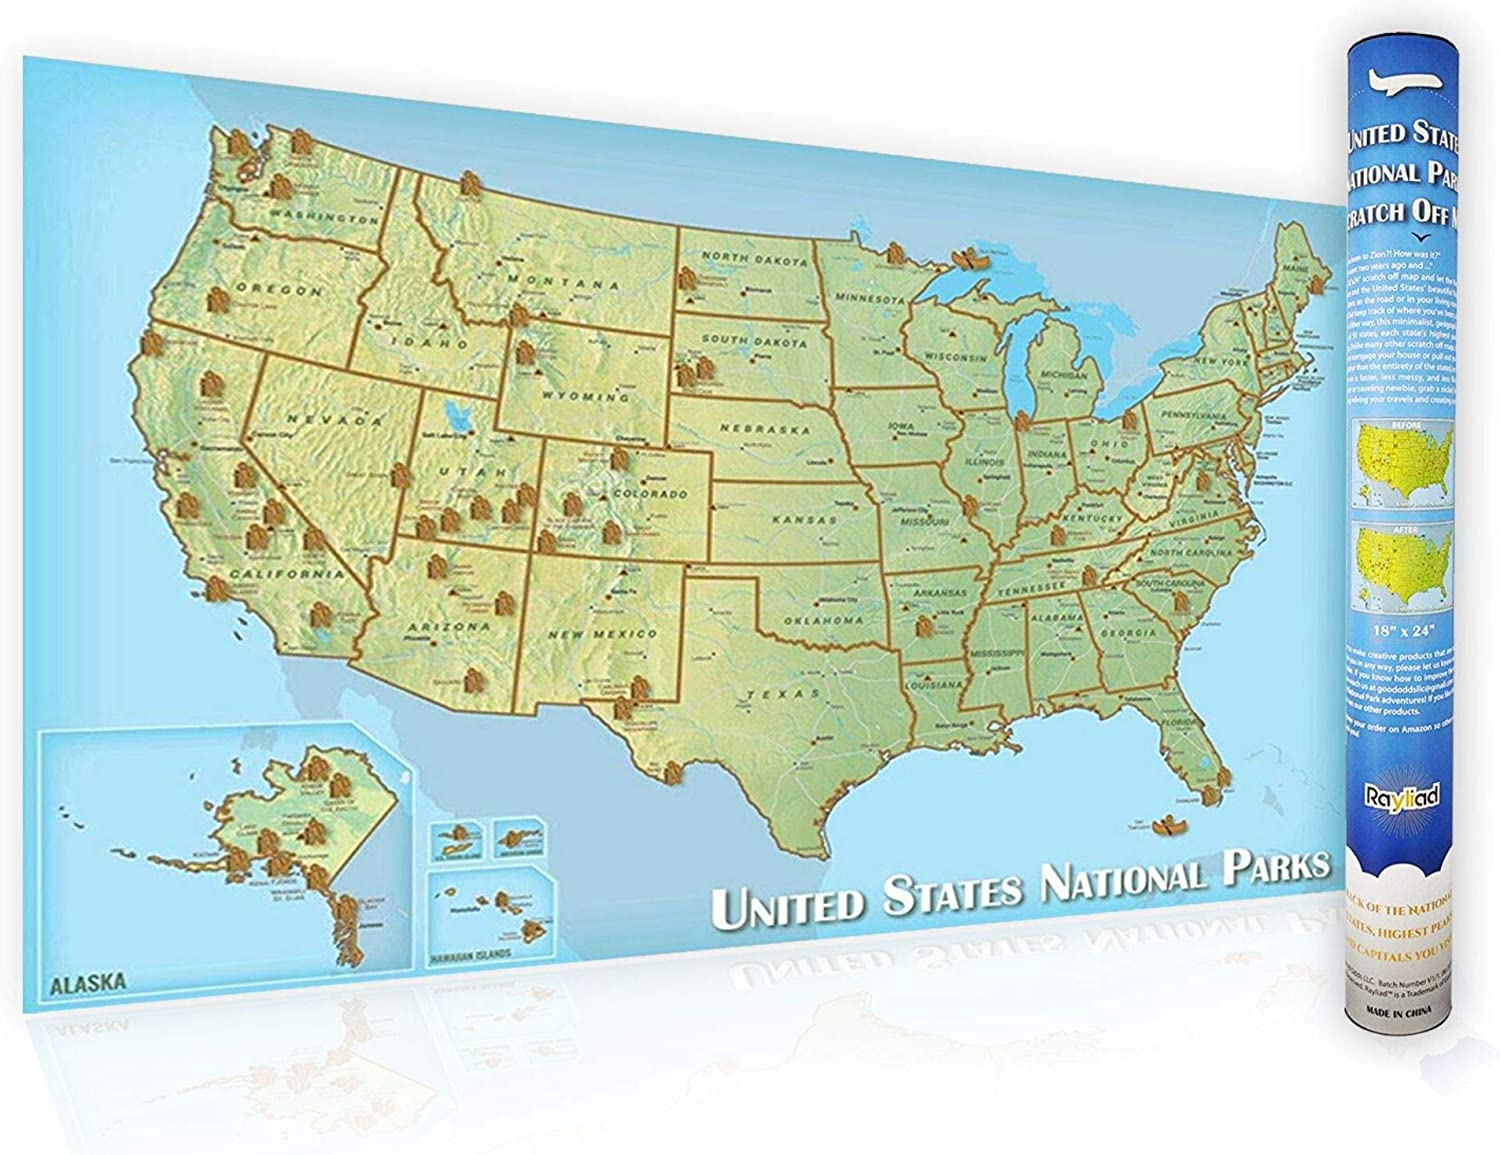 Rayliad United States National Park Scratch Off Map – 18 x 24 Inch on olympic national park map, food by state map, state birds map, badlands national park map, cuyahoga valley national park map, gates of the arctic national park map, national parks in each state, national map of usa, monuments by state map, new york state national parks map, casinos by state map, politics by state map, carlsbad caverns national park map, concealed carry by state map, religion by state map, katmai national park and preserve map, national wildlife refuges by state map, superfund sites by state map, military bases by state map, weather by state map,